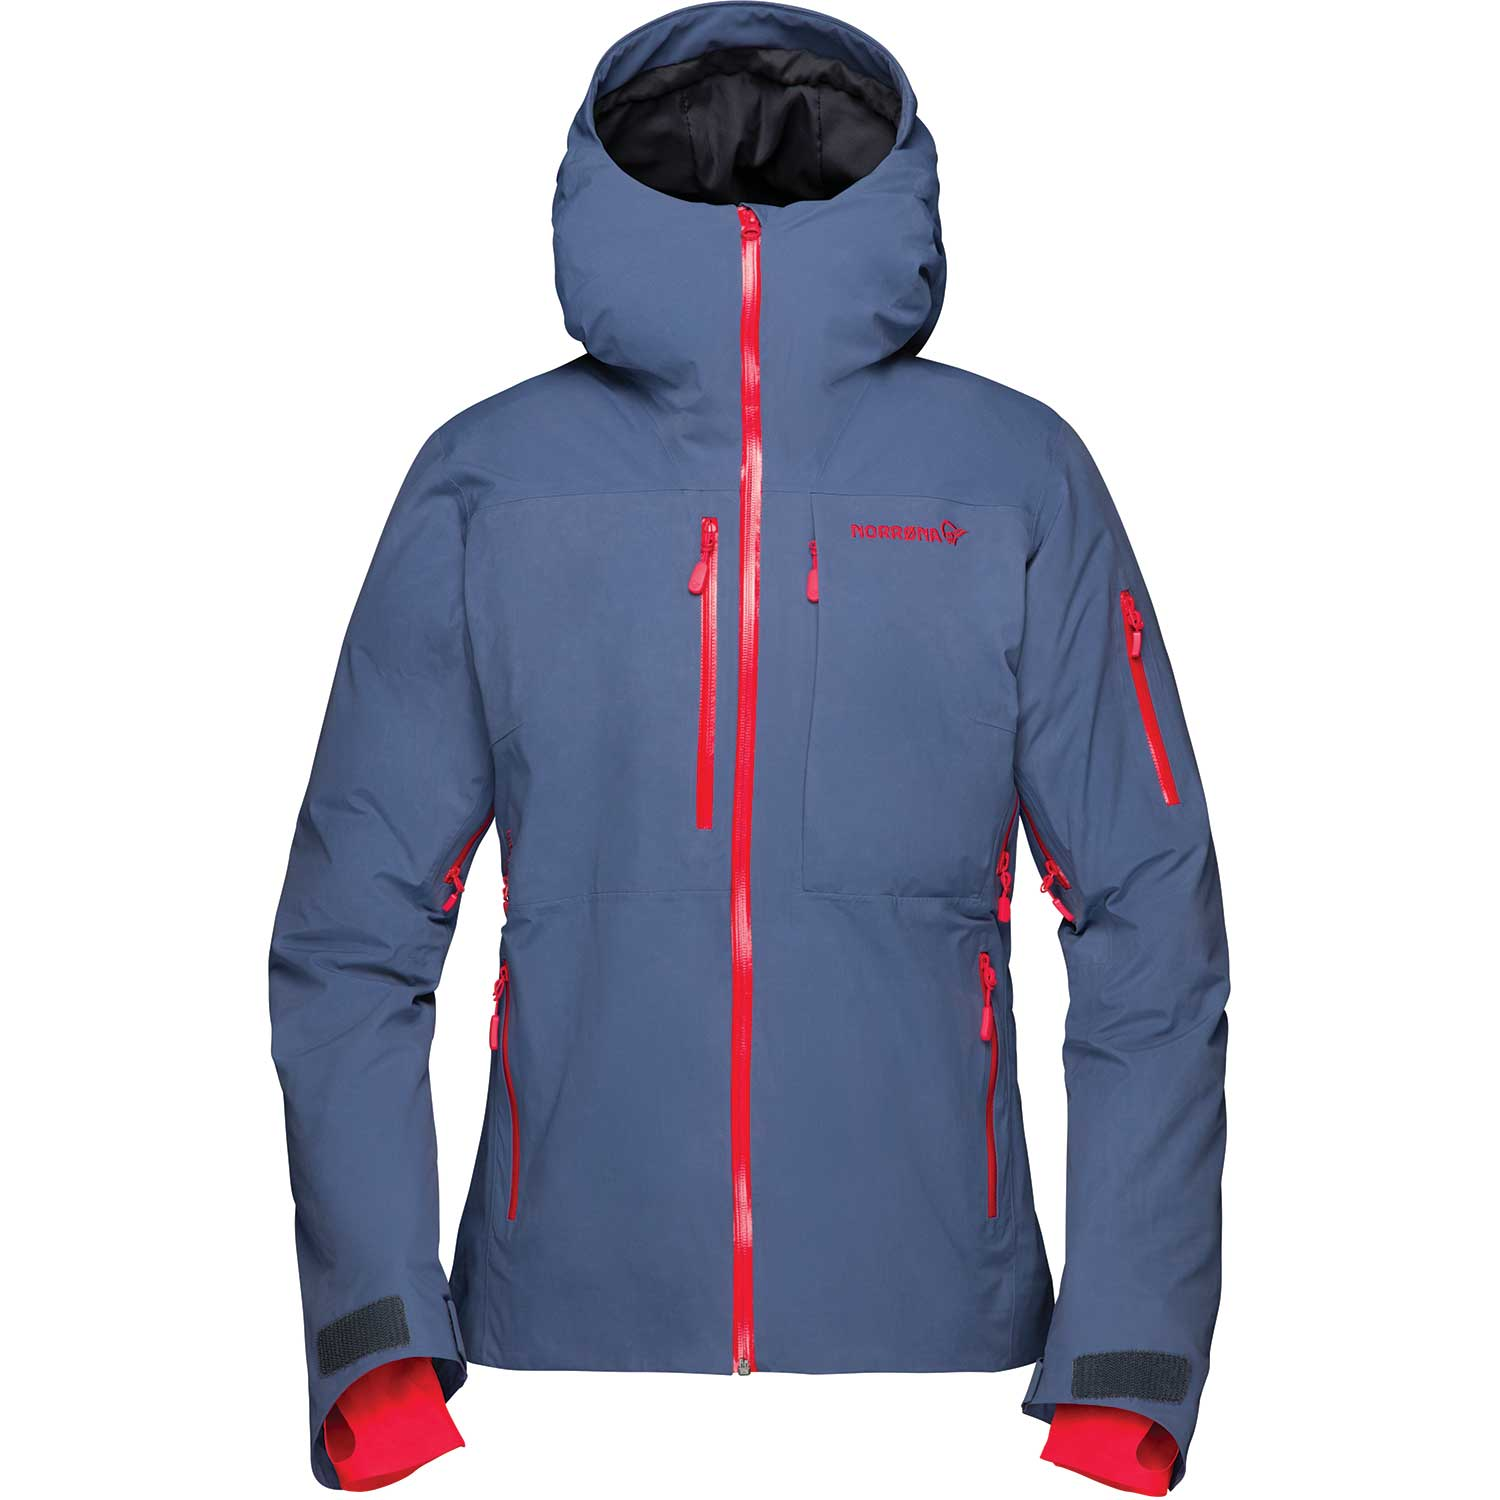 lofoten Gore-Tex insulated Jacket (W)